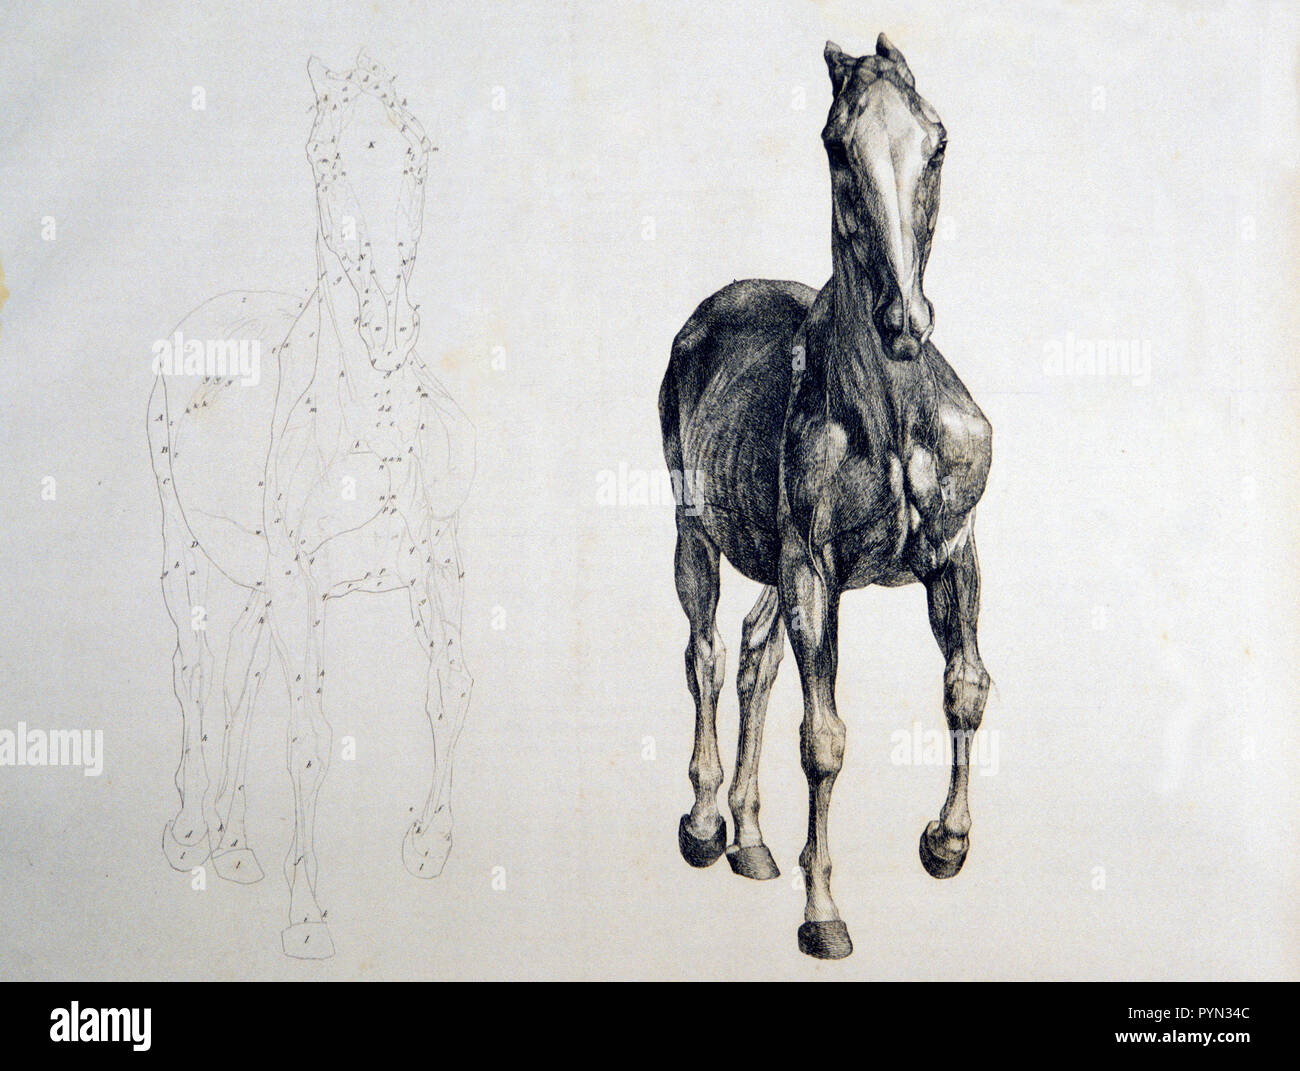 Horse Front View With Adjacent Outline Copy Ca 1766 Or 1823 Stock Photo Alamy